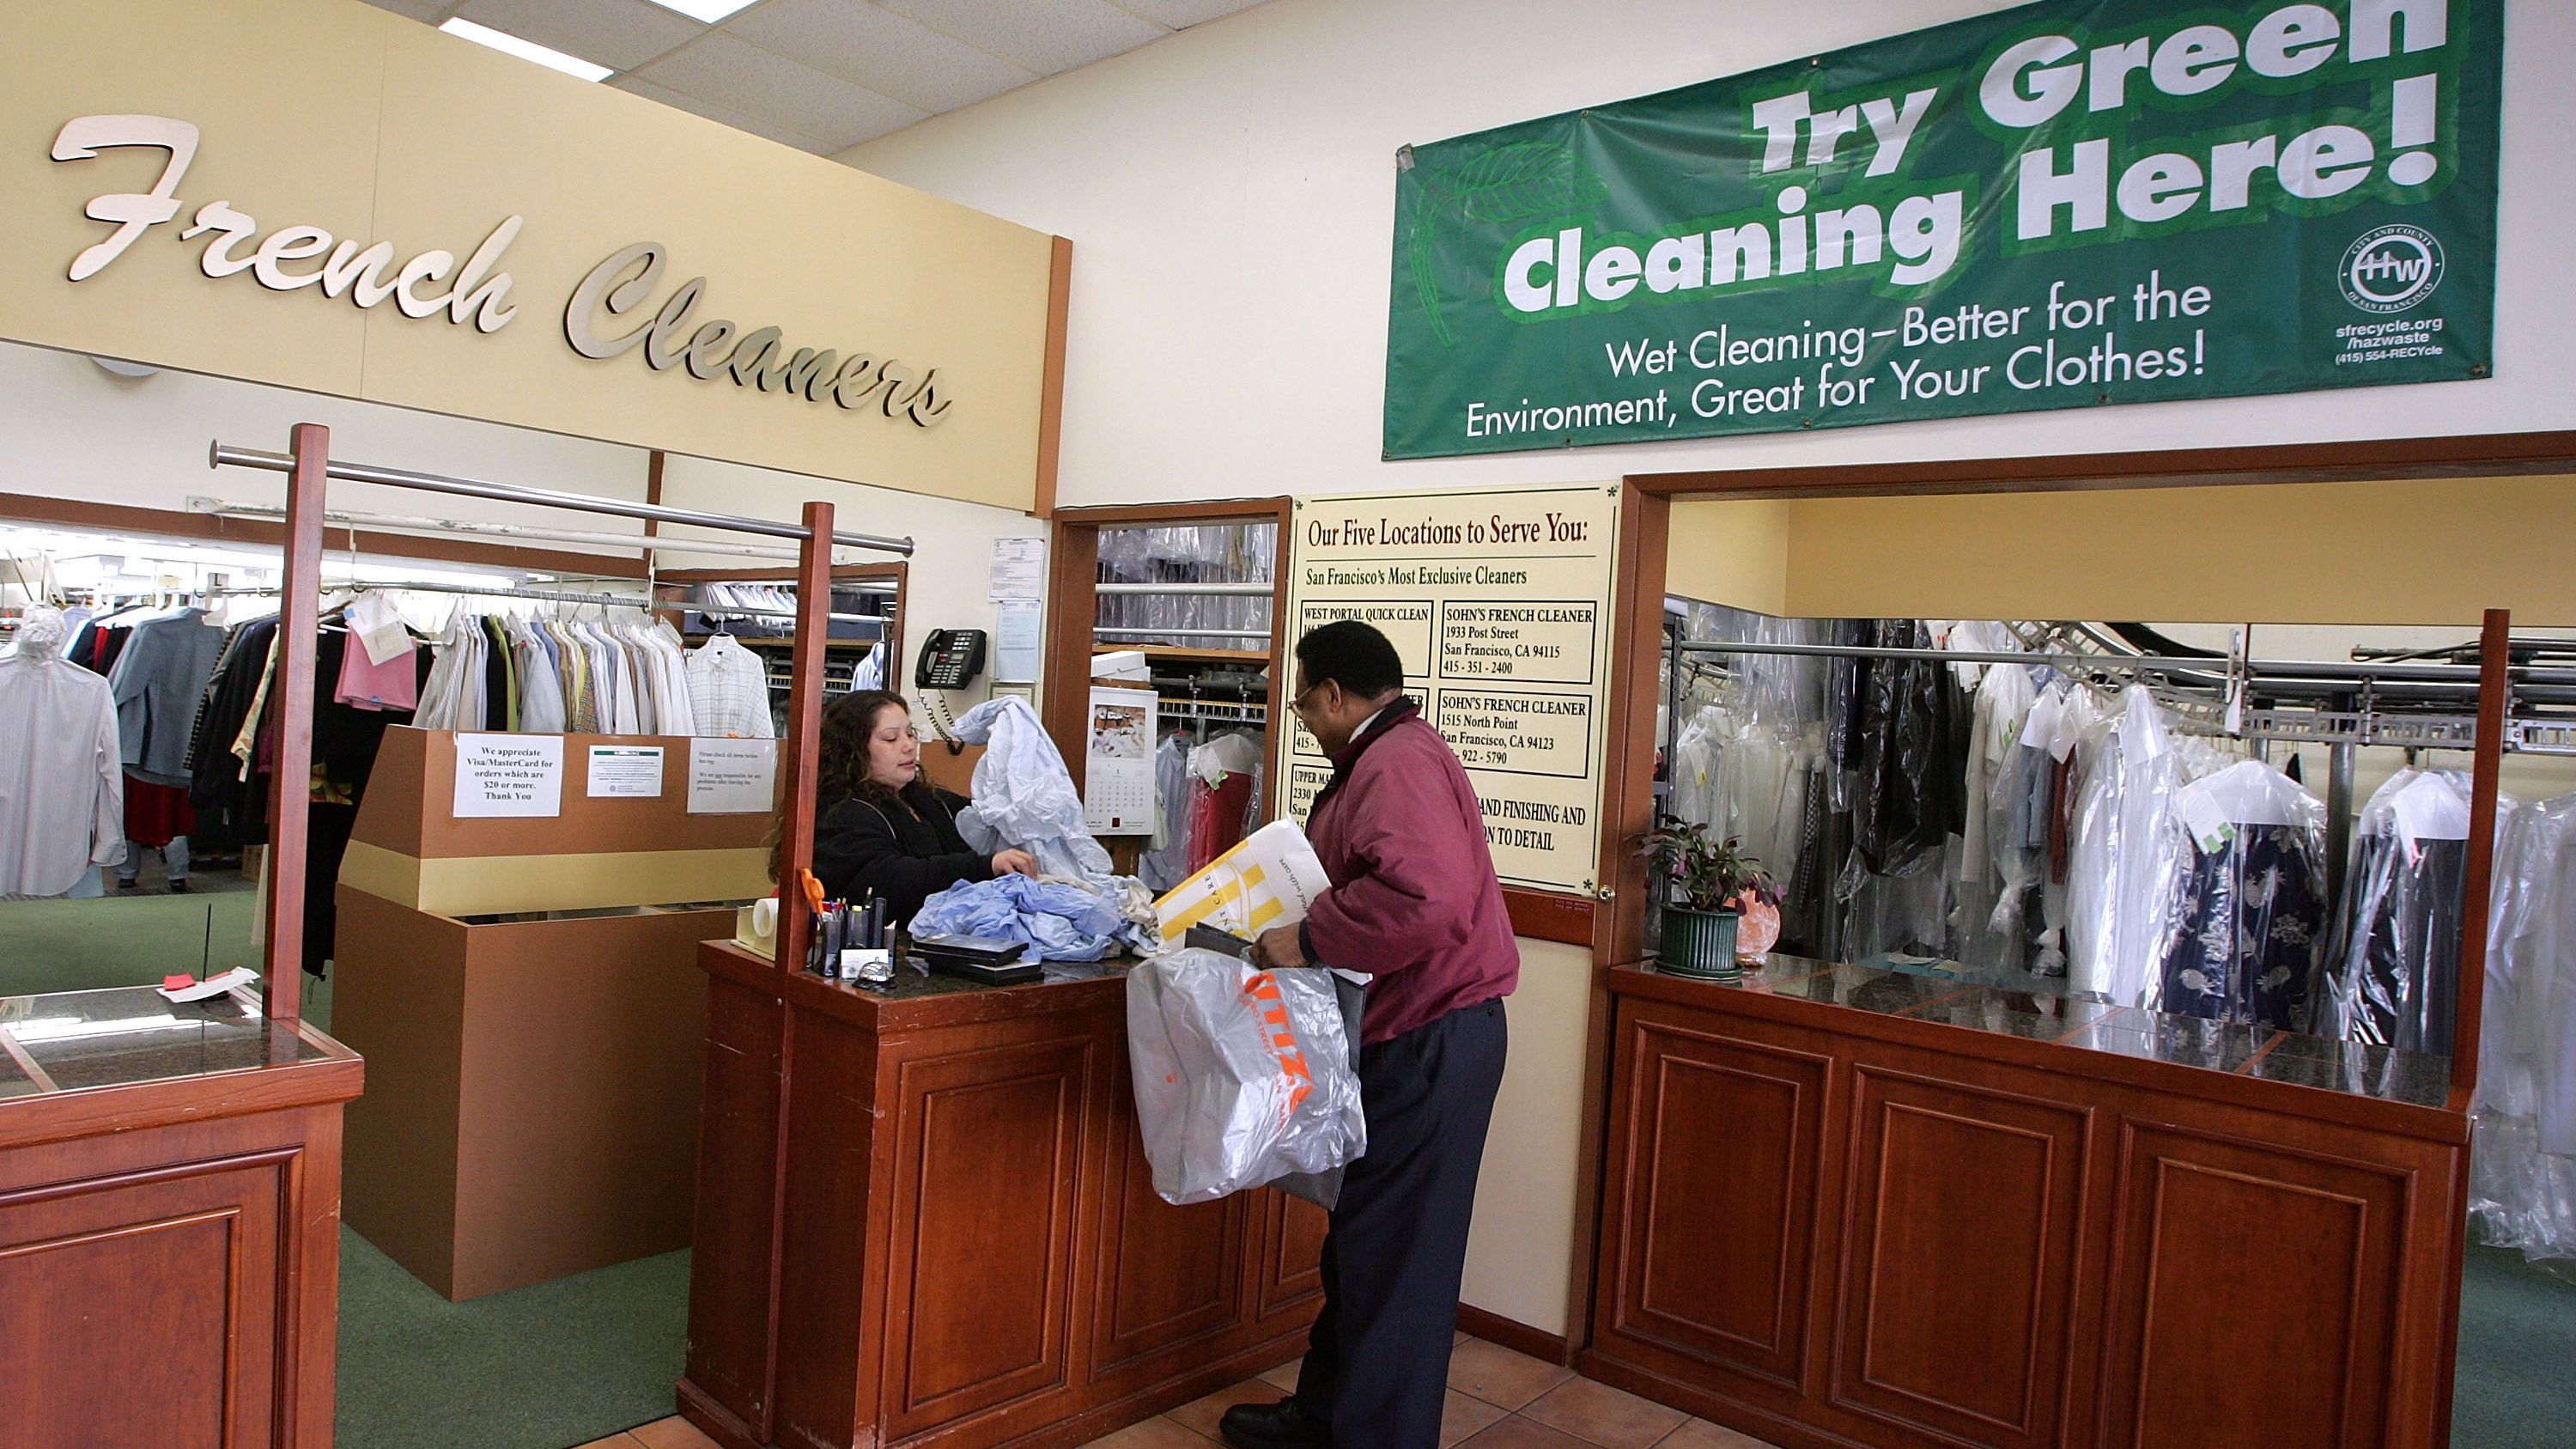 How To Find Environmentally Friendly Dry Cleaners